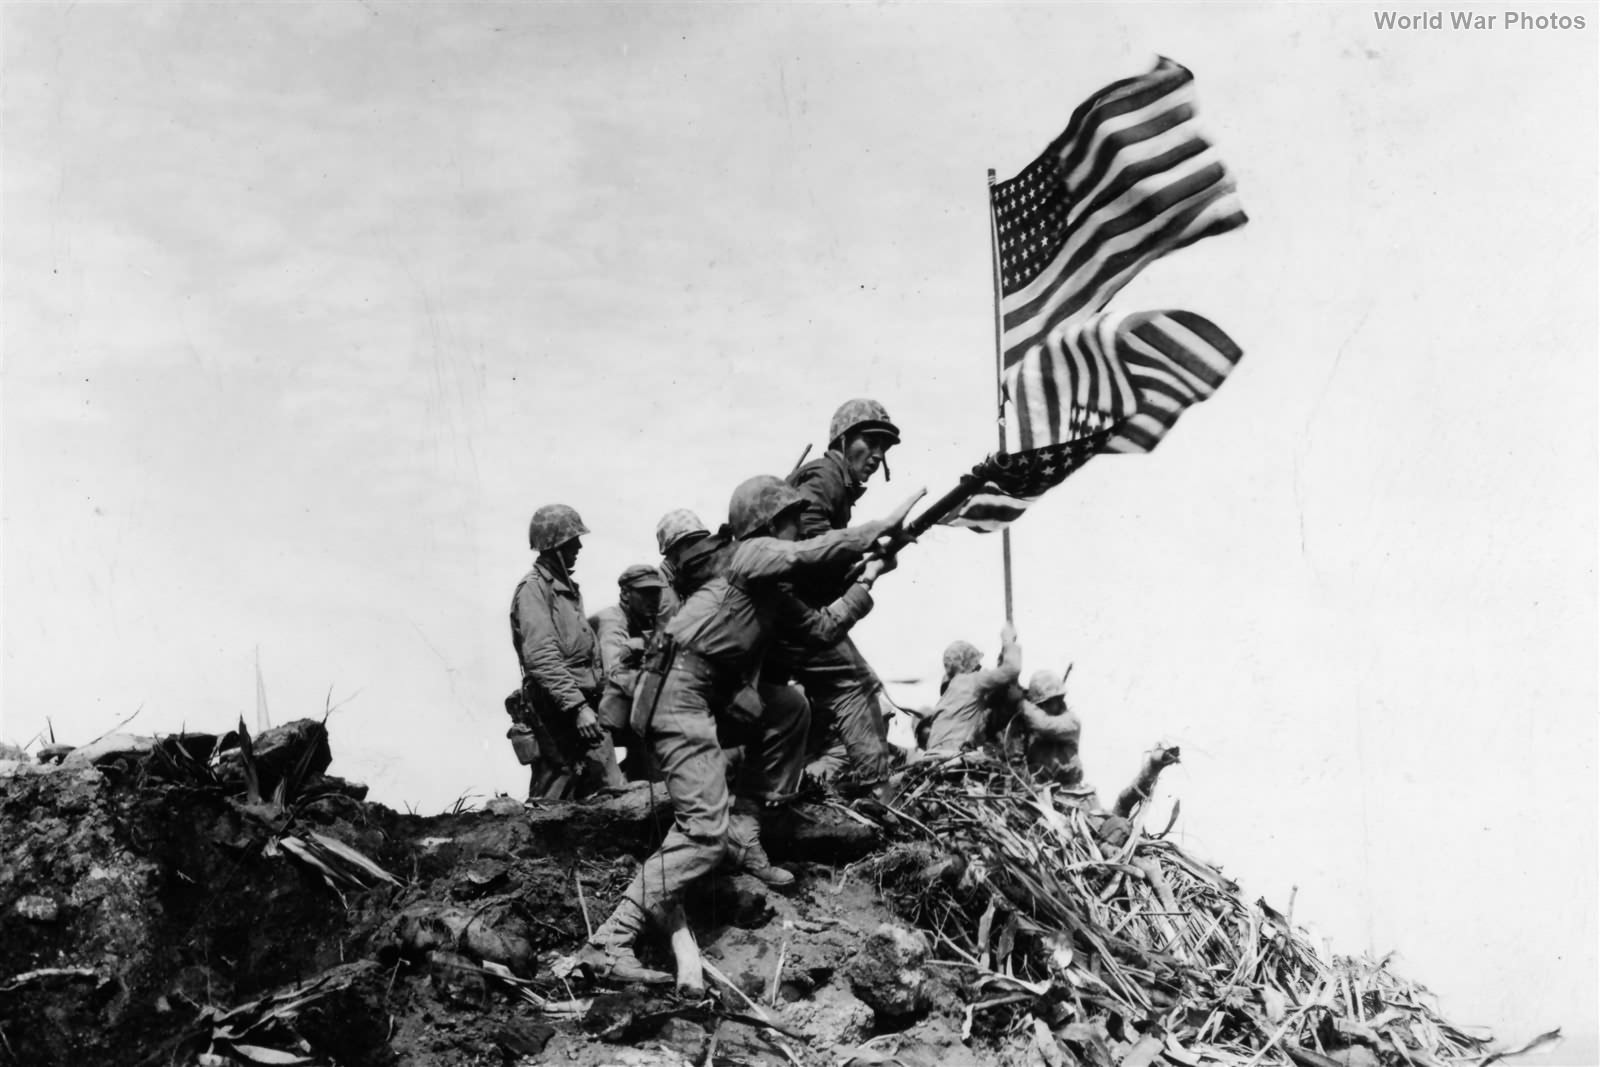 Preparing to raise the 2nd Flag on Mt Suribachi Iwo Jima 23feb